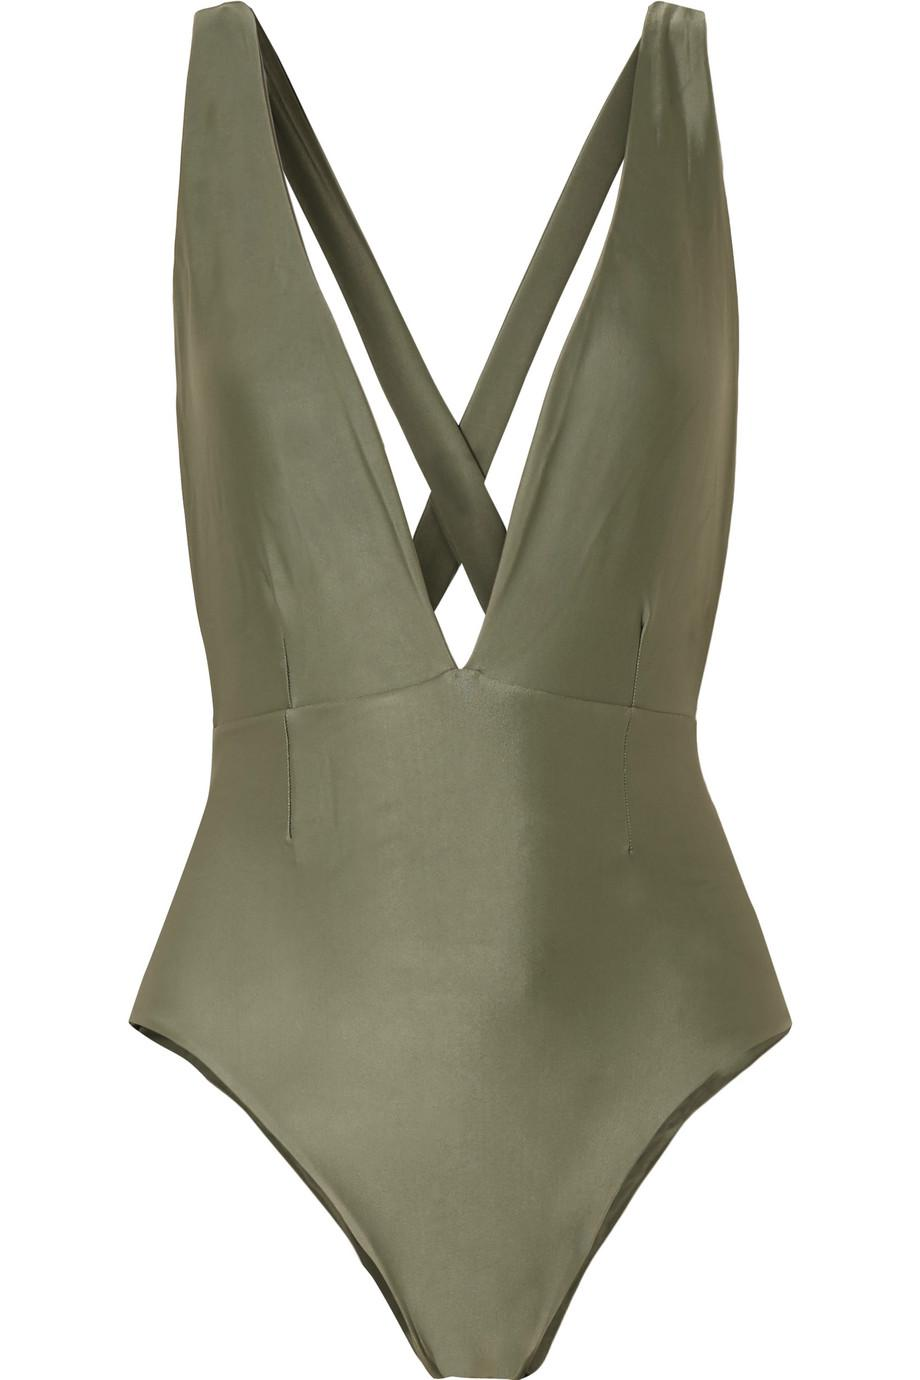 Cheap Price Store Marina Swimsuit - Army green Haight Official Online Buy Cheap Clearance Store ujnh0z7yY